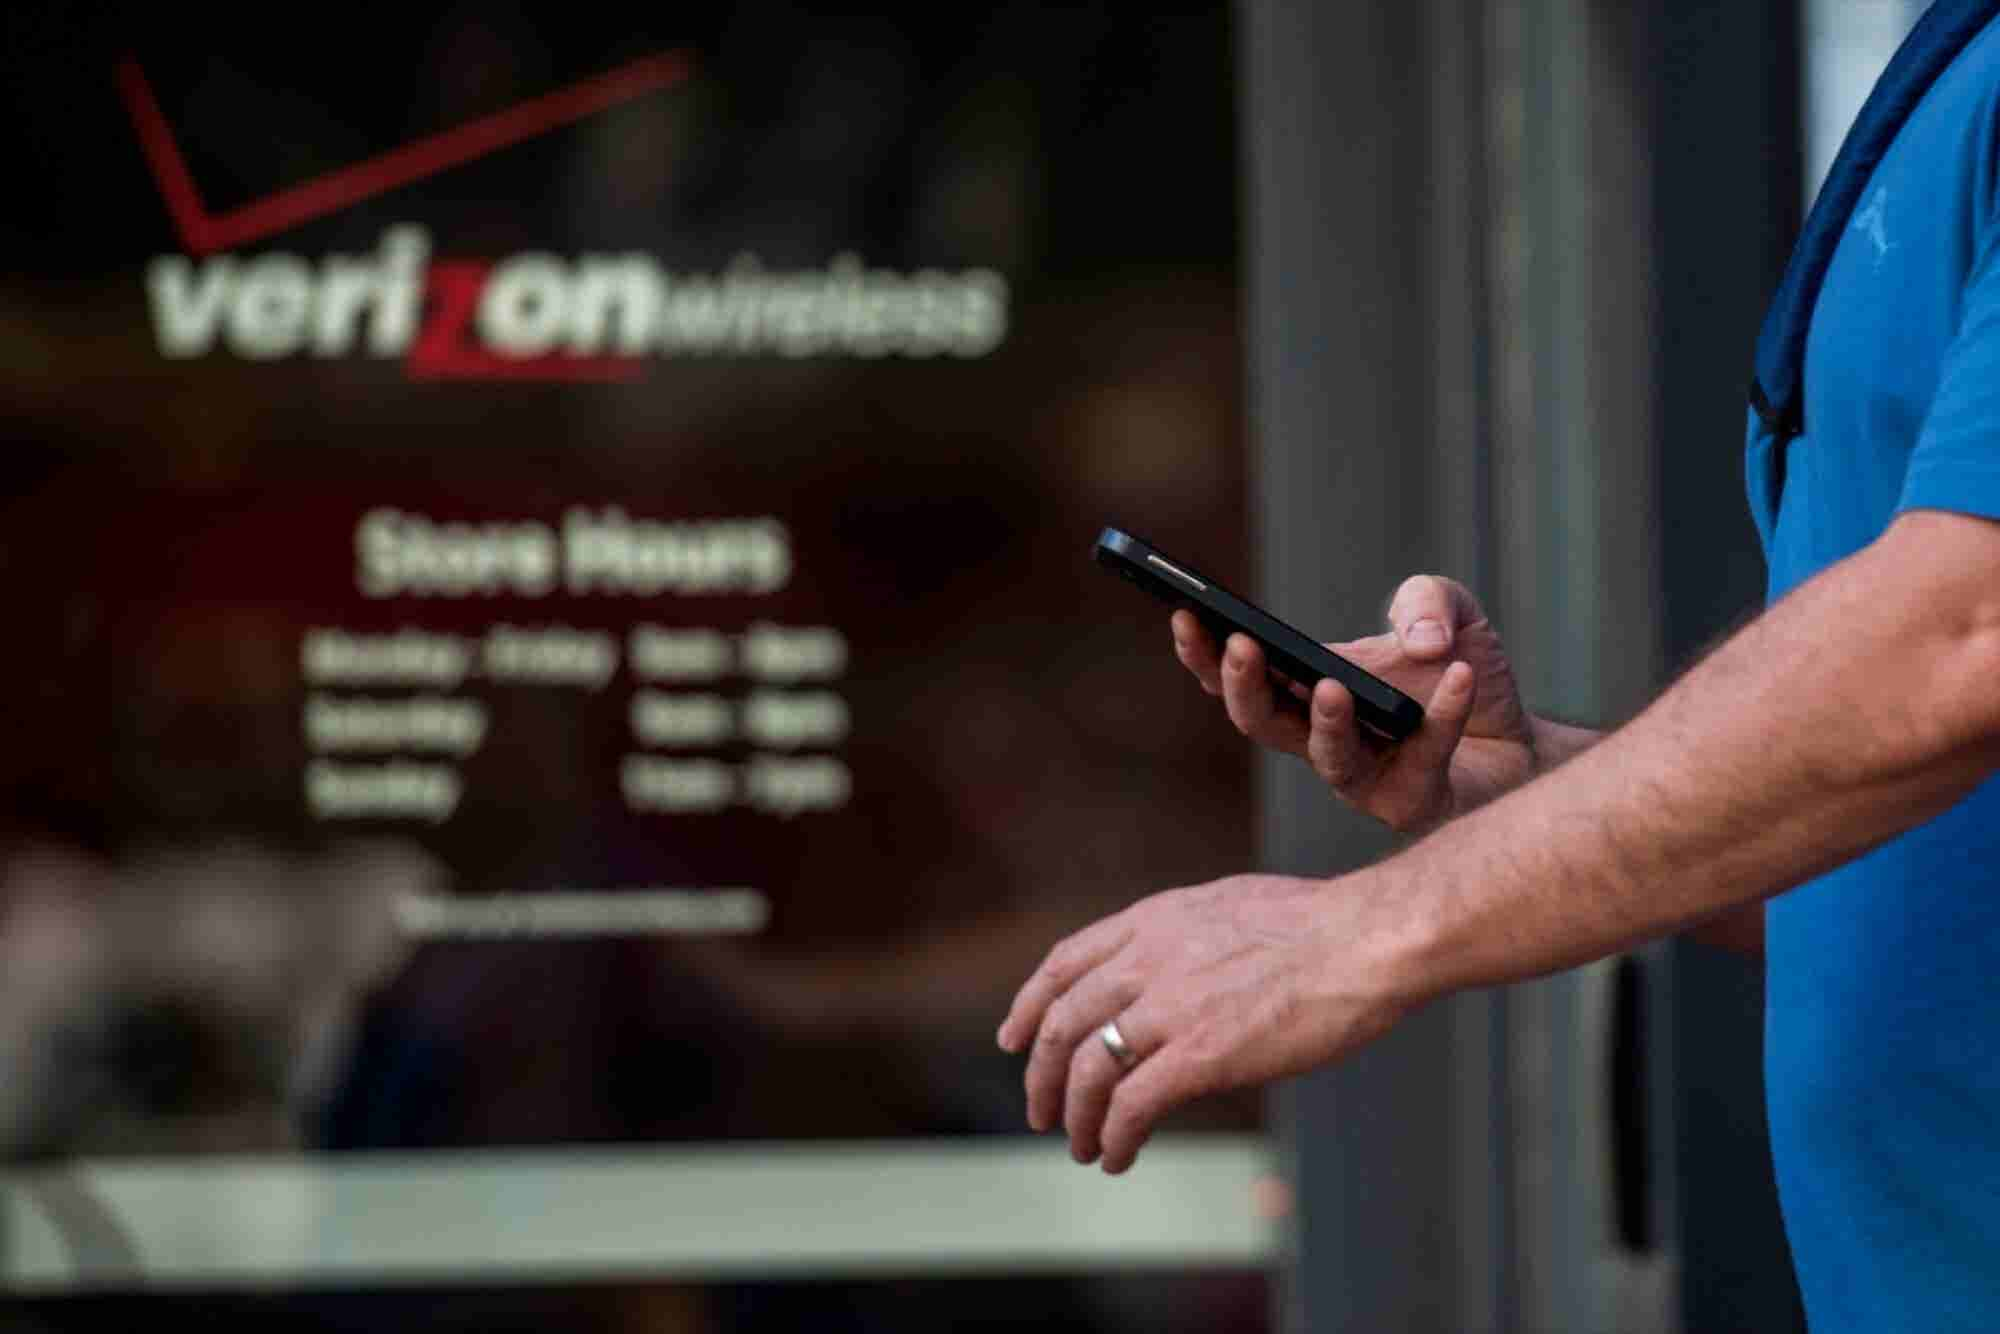 Verizon Bringing Back Unlimited Data